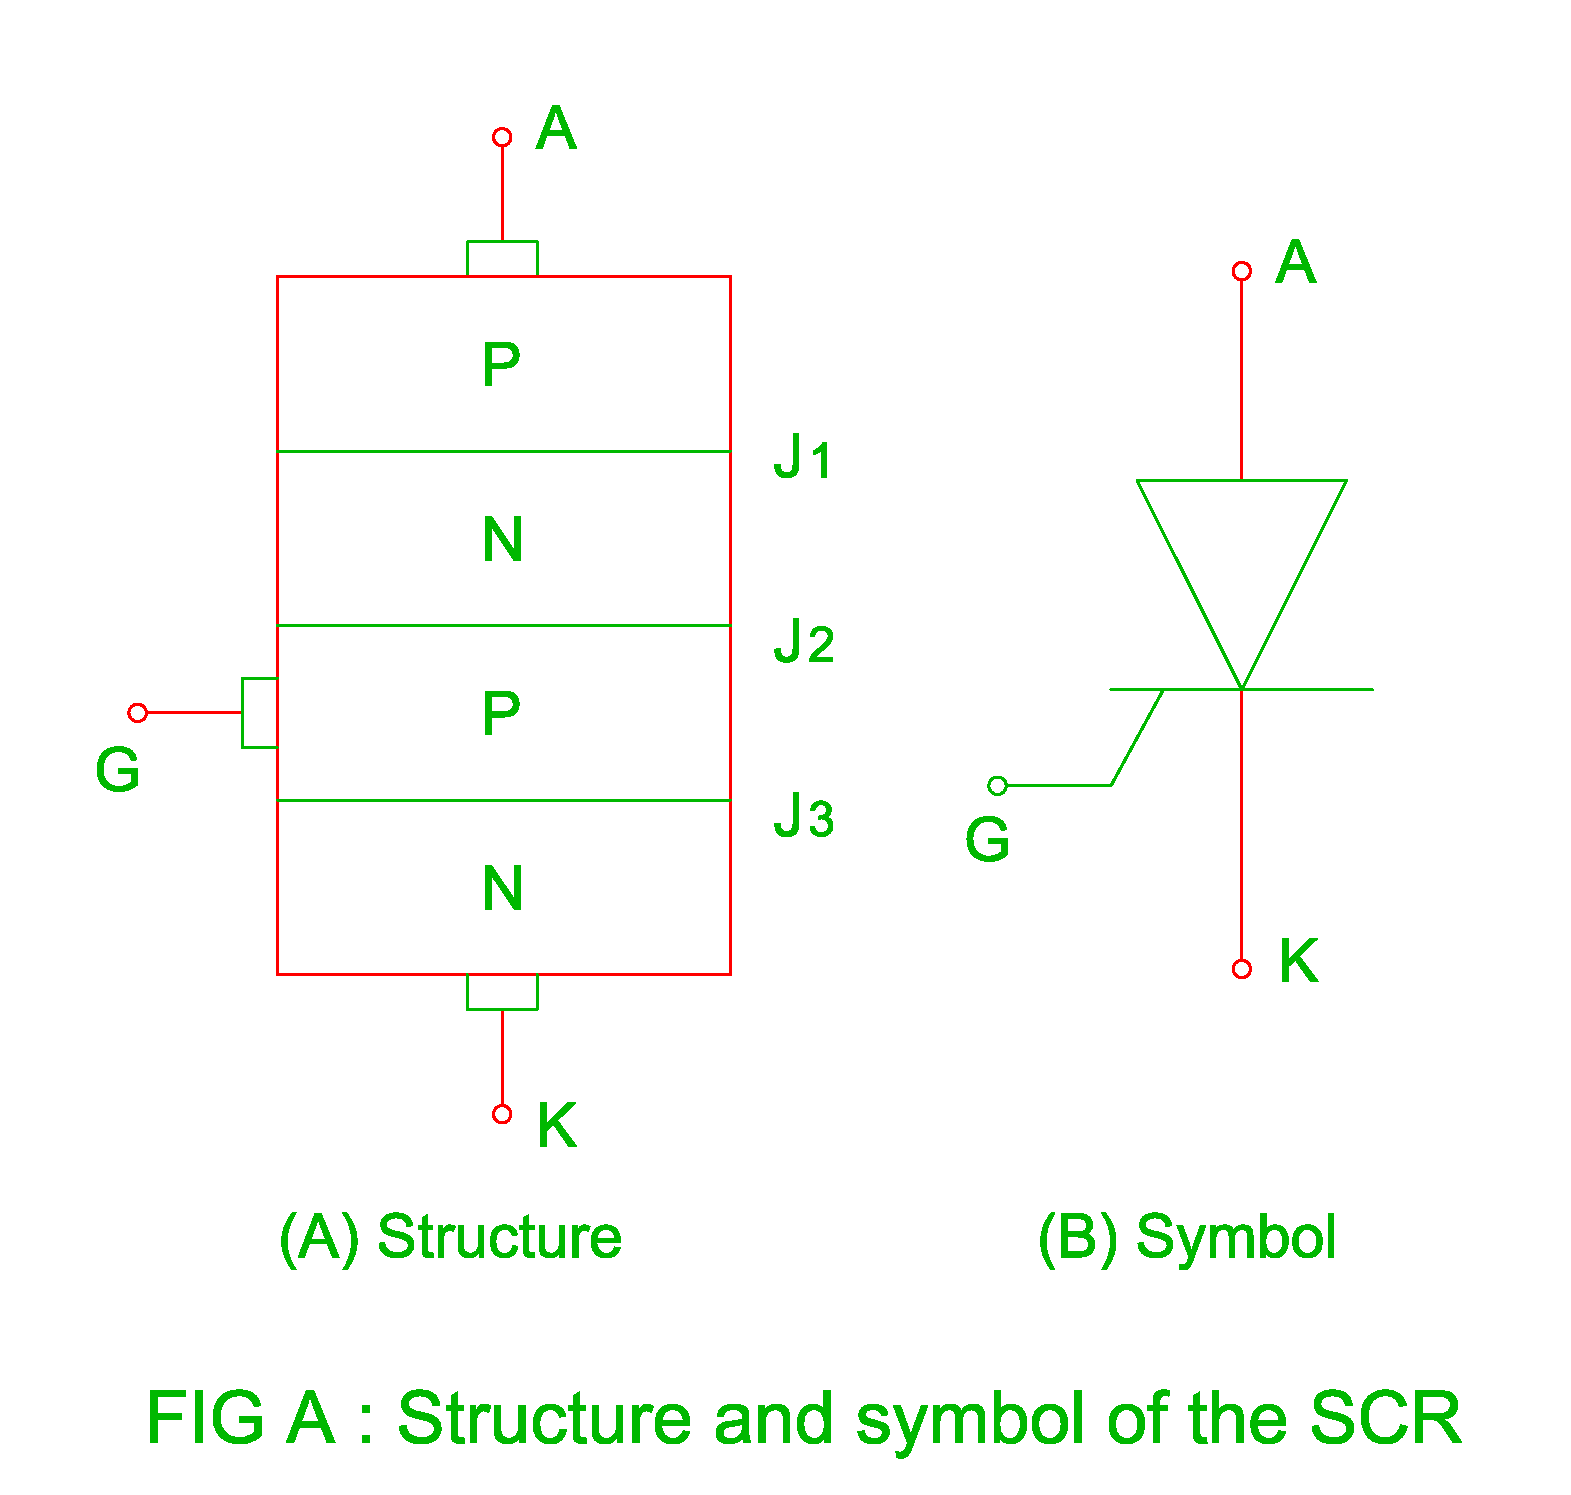 structure-and-symbol-of-the-scr.png